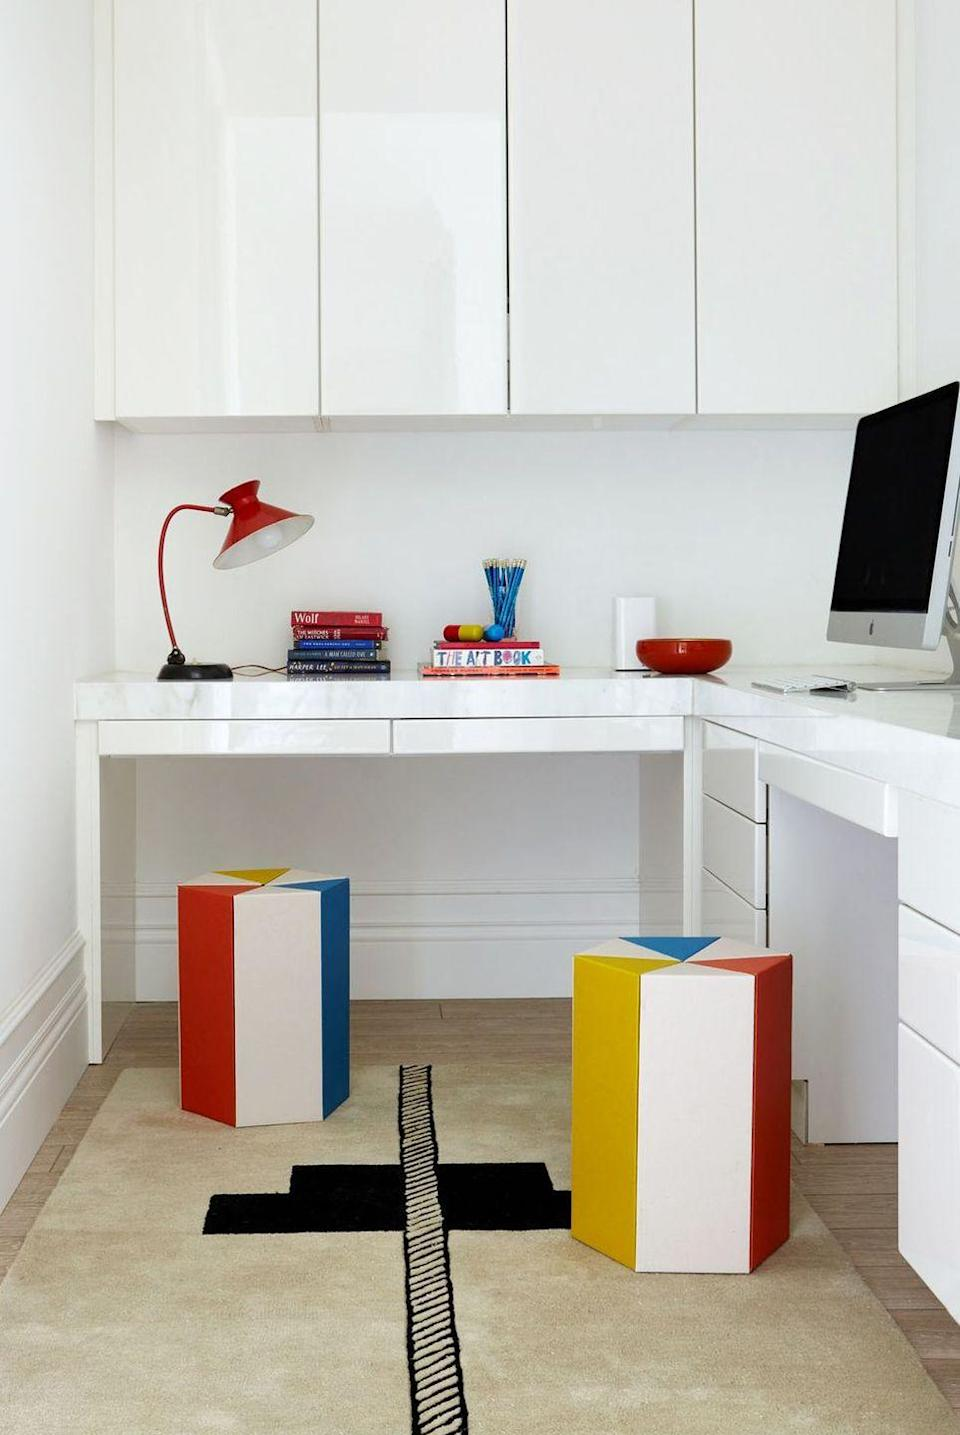 """<p>If you're converting a windowless walk-in closet into a workspace—or carving out a small corner of a larger room—opt for glossy white lacquered cabinets and furniture. The high sheen imparts a mirror-like effect, reflecting light to make it feel like a larger, more open space. Designer <a href=""""http://www.rajirm.com/"""" rel=""""nofollow noopener"""" target=""""_blank"""" data-ylk=""""slk:Raji Radhakrishnan"""" class=""""link rapid-noclick-resp"""">Raji Radhakrishnan</a> gave <a href=""""https://www.housebeautiful.com/design-inspiration/house-tours/a30696950/raji-rm-piet-boon-virginia/"""" rel=""""nofollow noopener"""" target=""""_blank"""" data-ylk=""""slk:this"""" class=""""link rapid-noclick-resp"""">this</a> home office some fun pops of vibrancy with primary-colored stools and a graphic rug.</p>"""